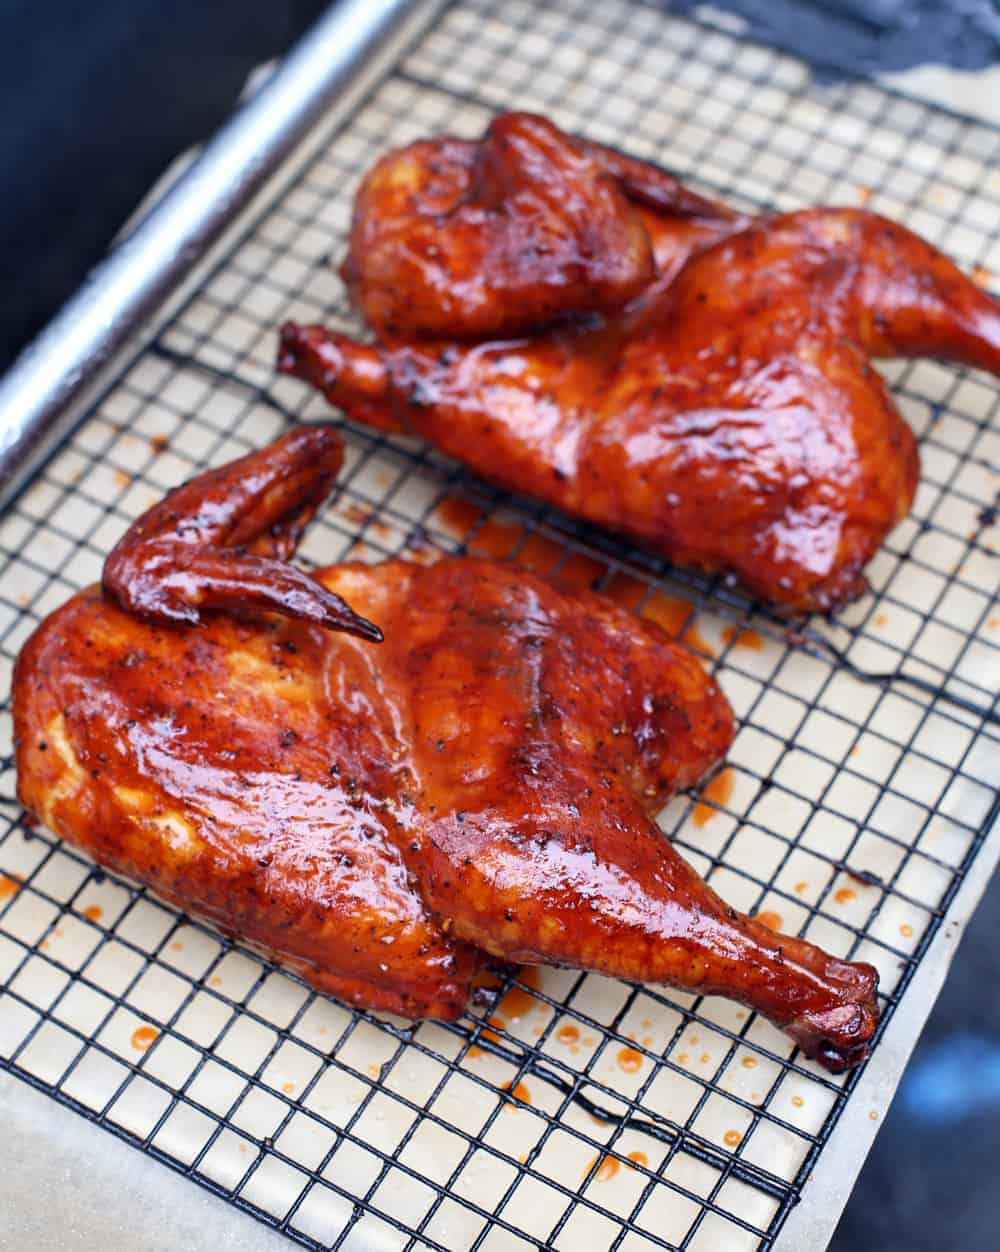 Dry Brined Smoked Chicken with a Carolina BBQ Glazed